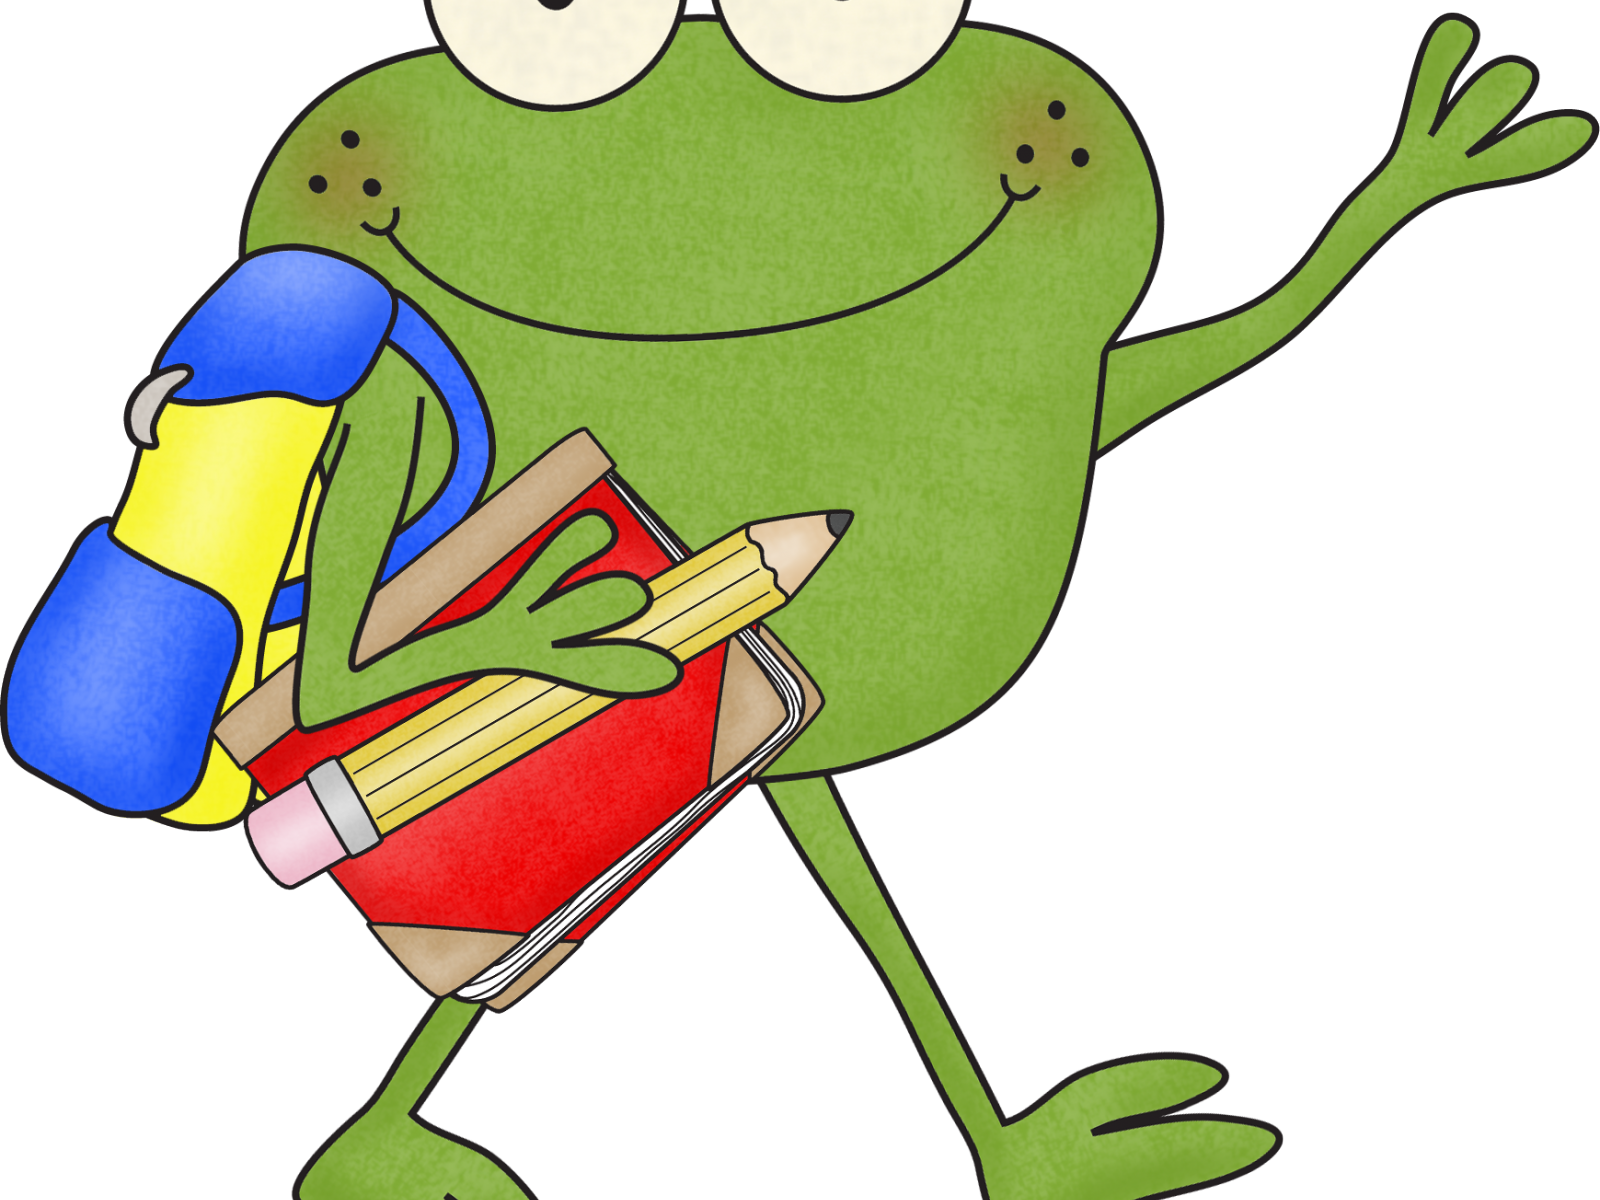 Frogs clipart school, Frogs school Transparent FREE for.